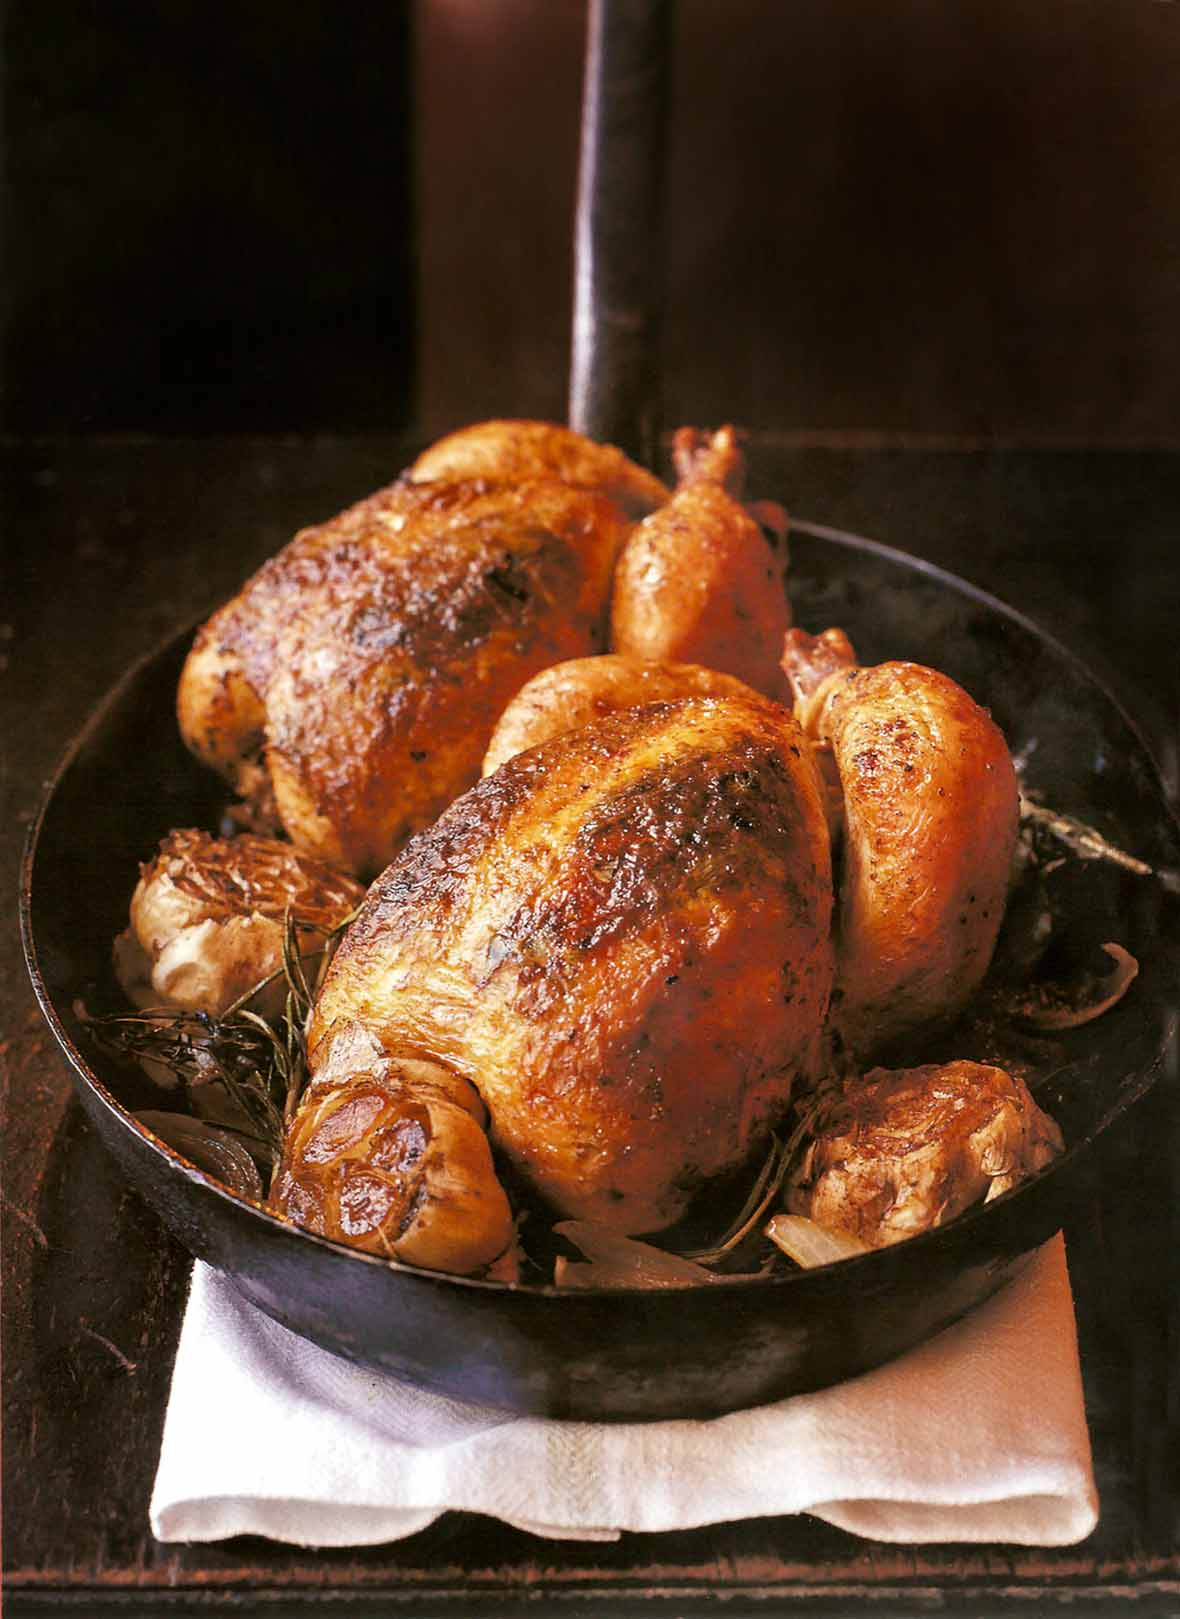 Two whole chickens and whole garlic heads in a cast iron pan